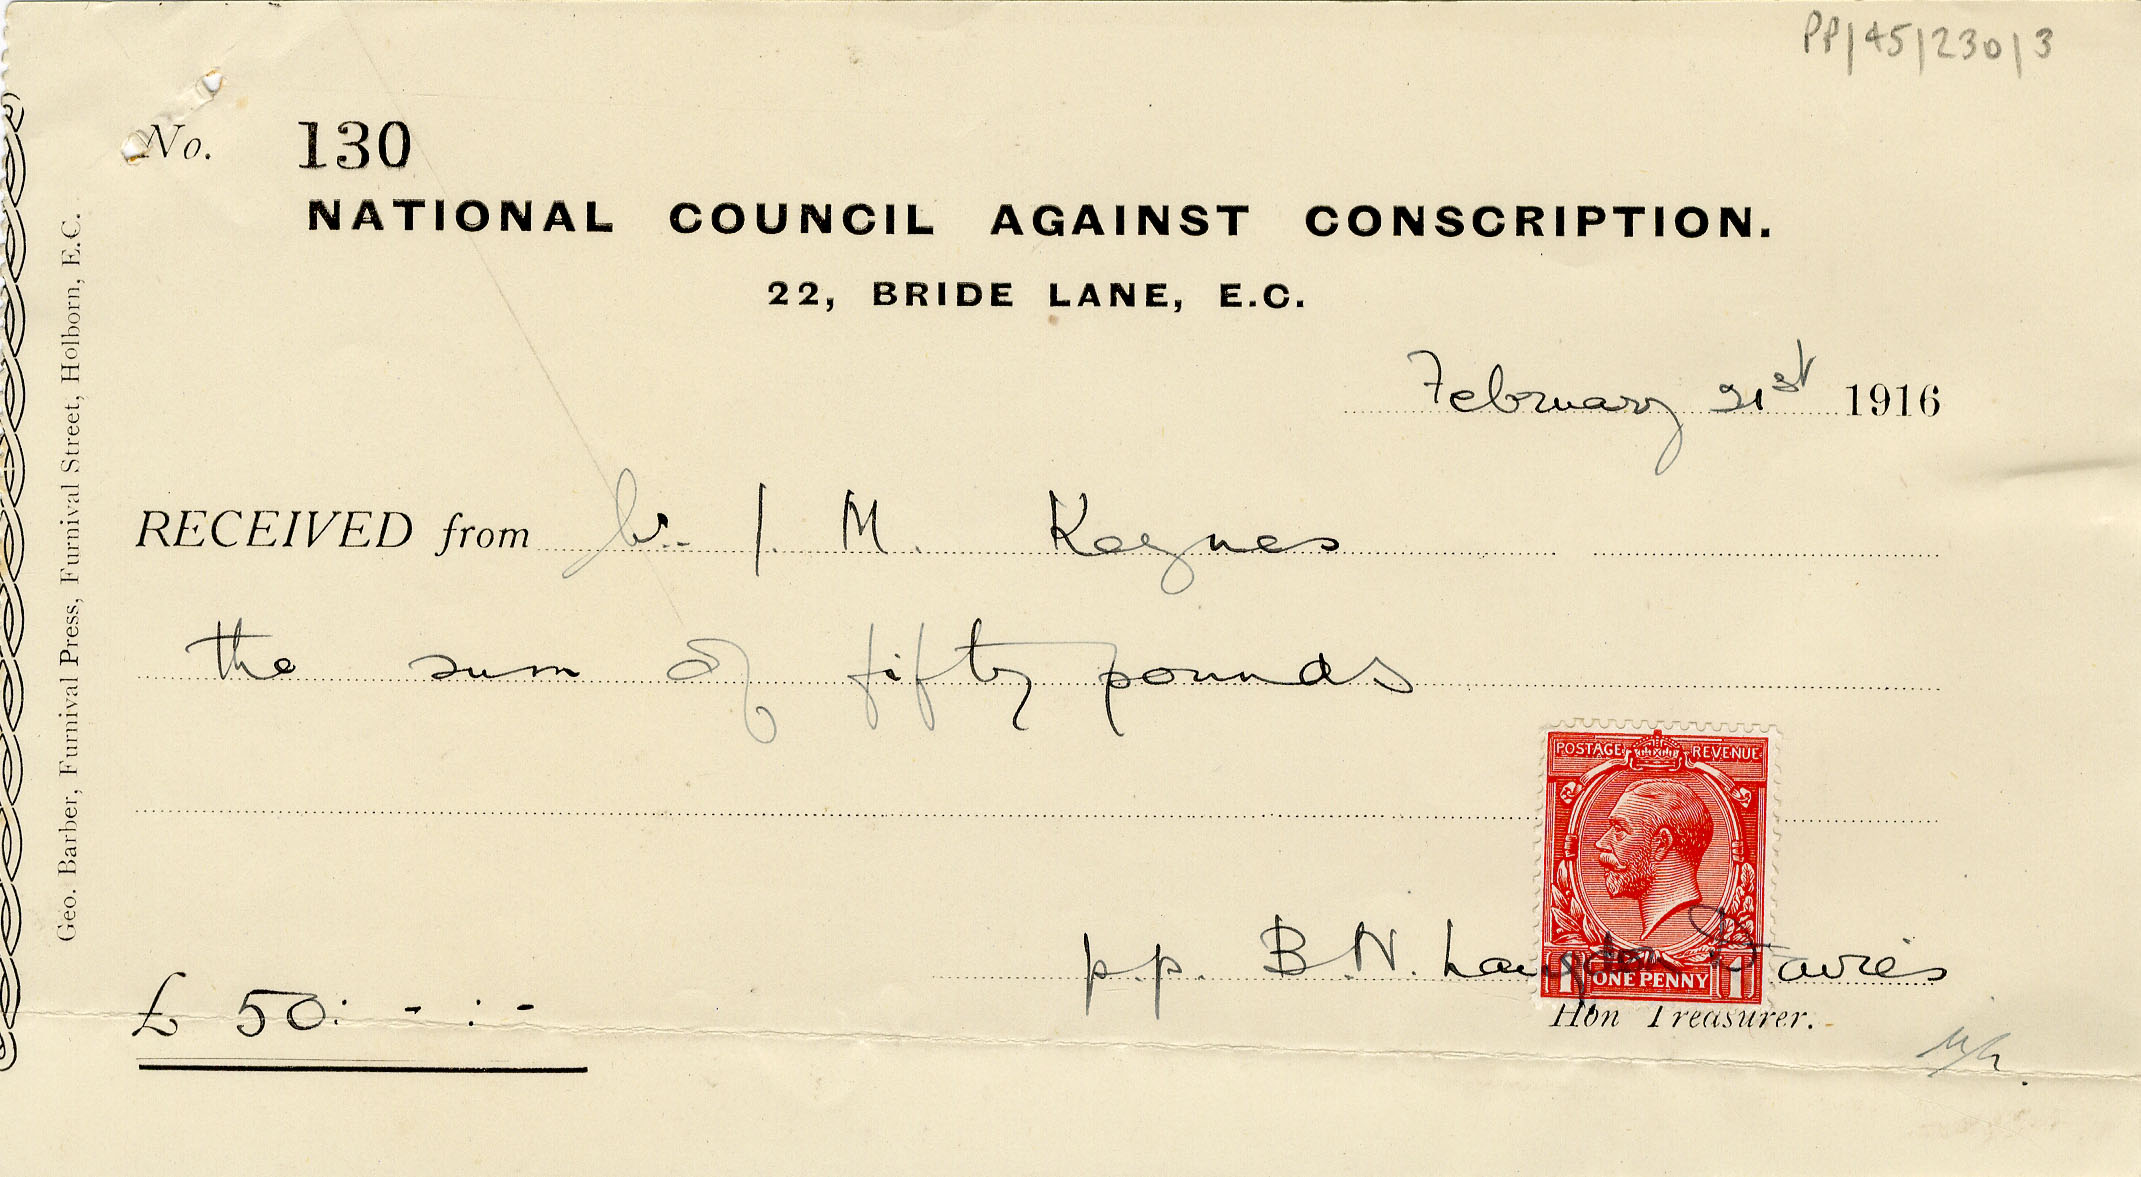 Receipt for Keynes' subscription to the National Council Against Conscription (JMK/PP/45/230/3)